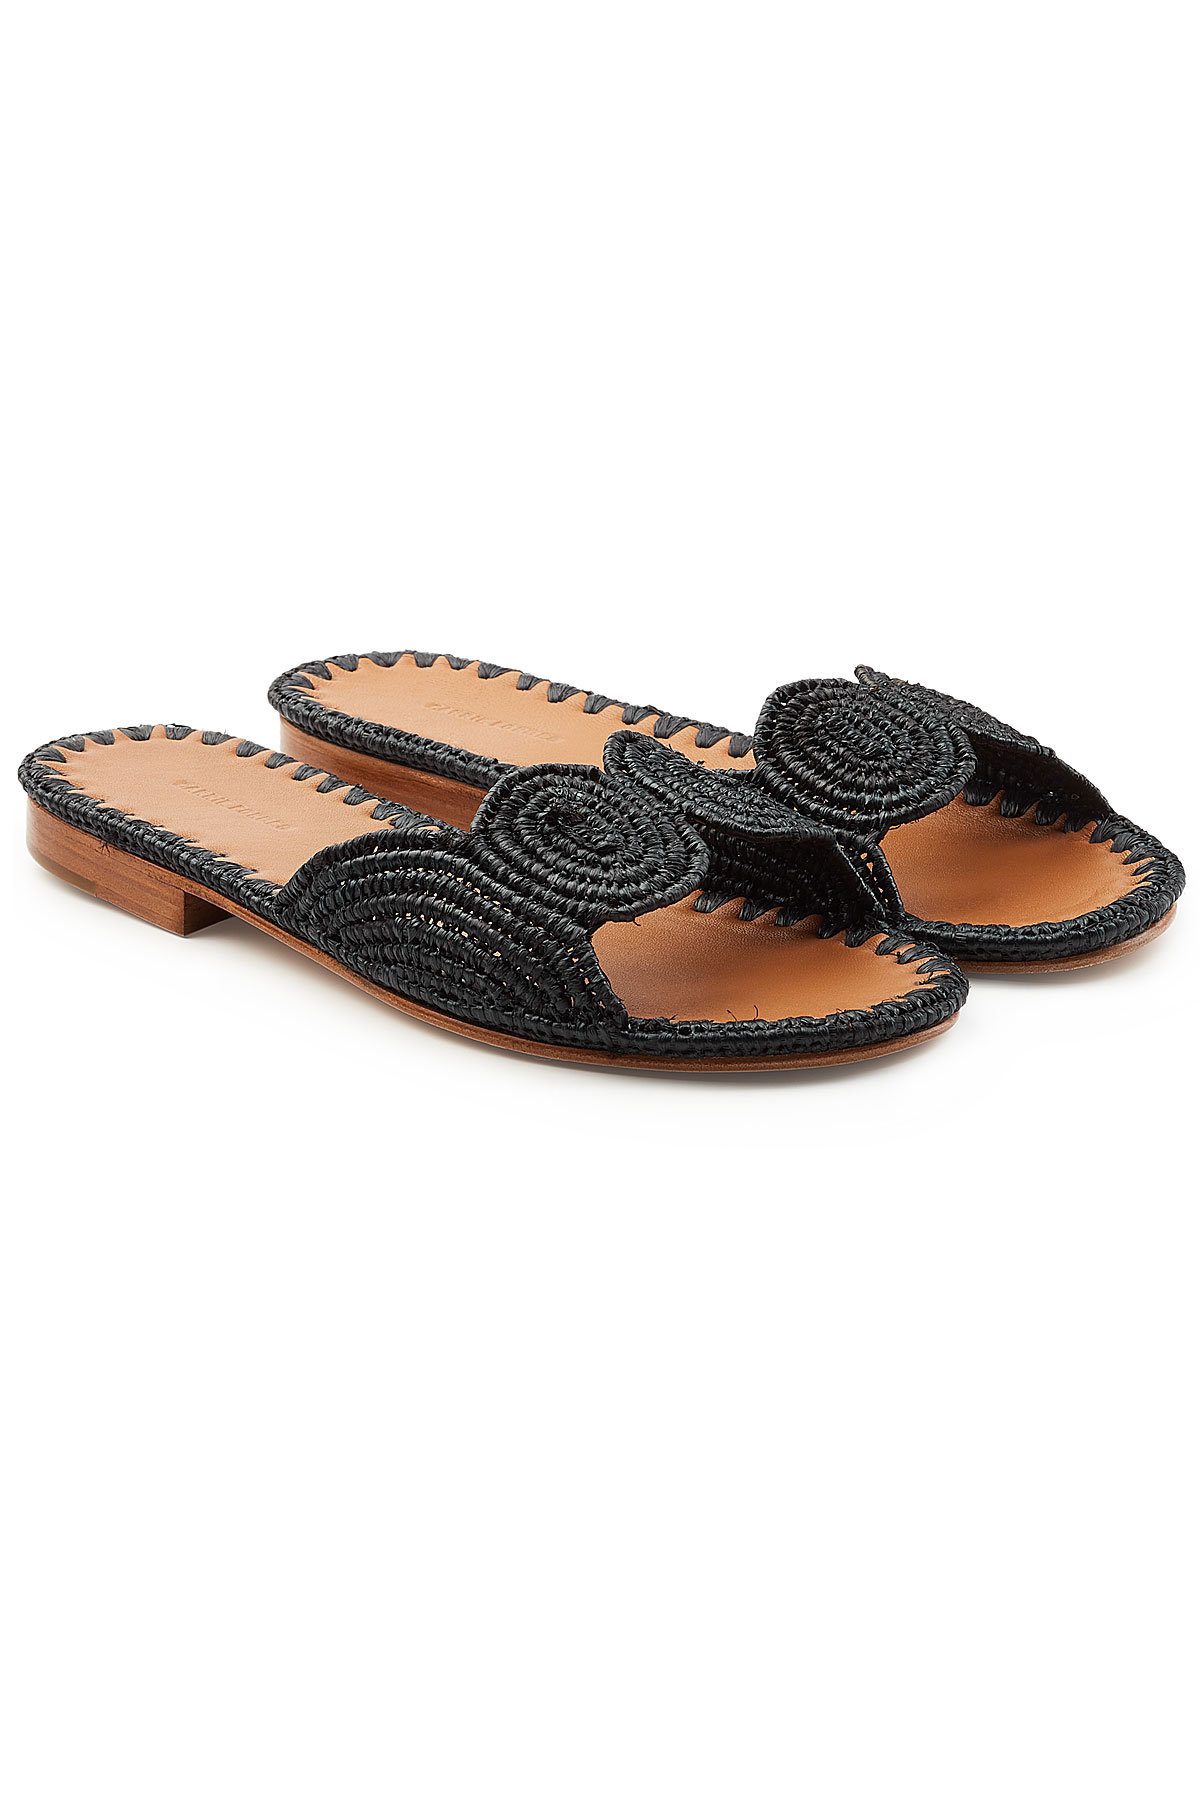 Carrie Forbes Salon Sandals with Raffia Gr. IT 40